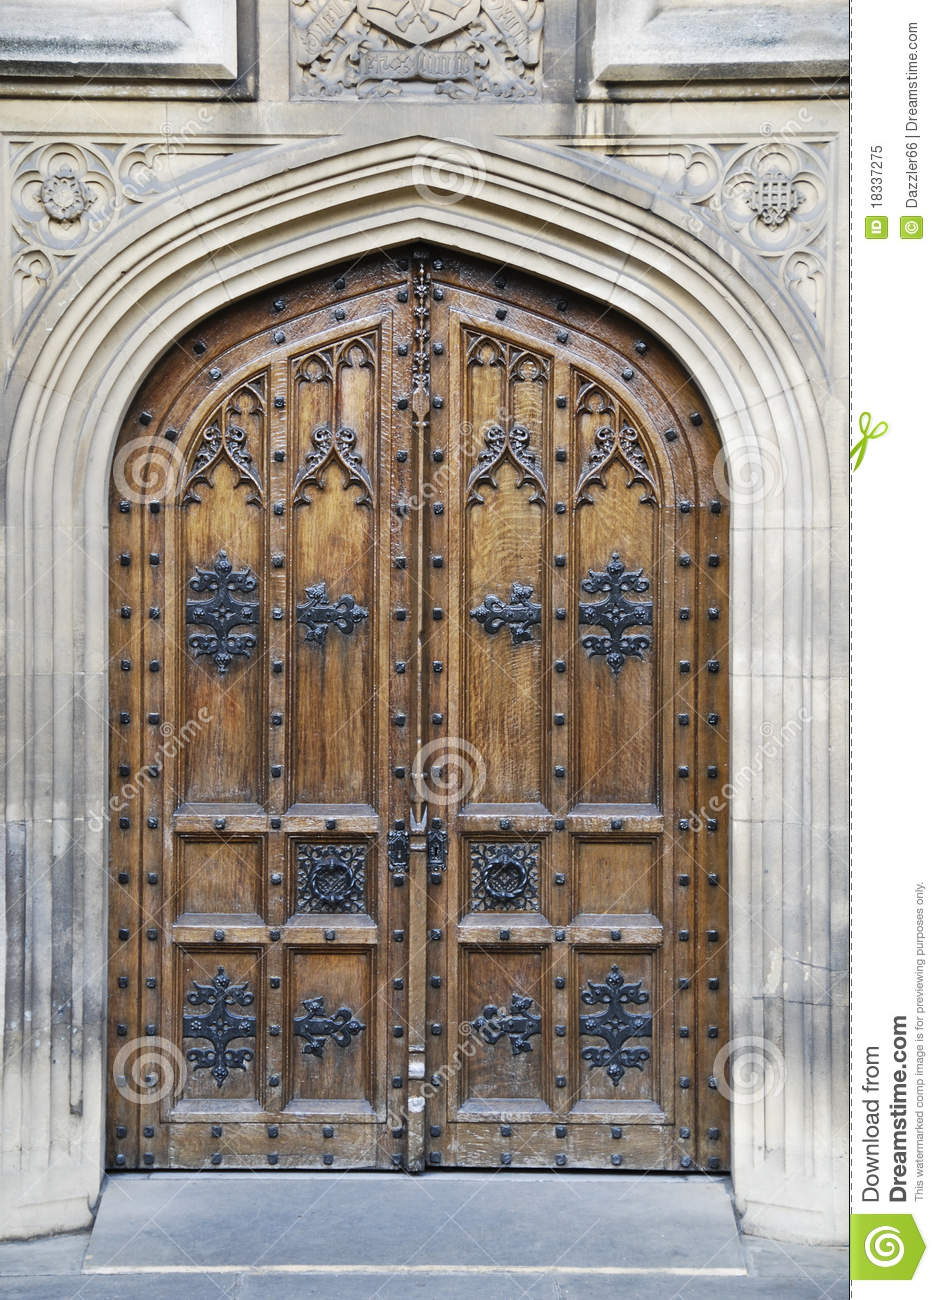 Imposing doorway royalty free stock photo image 18337275 for Door z prague